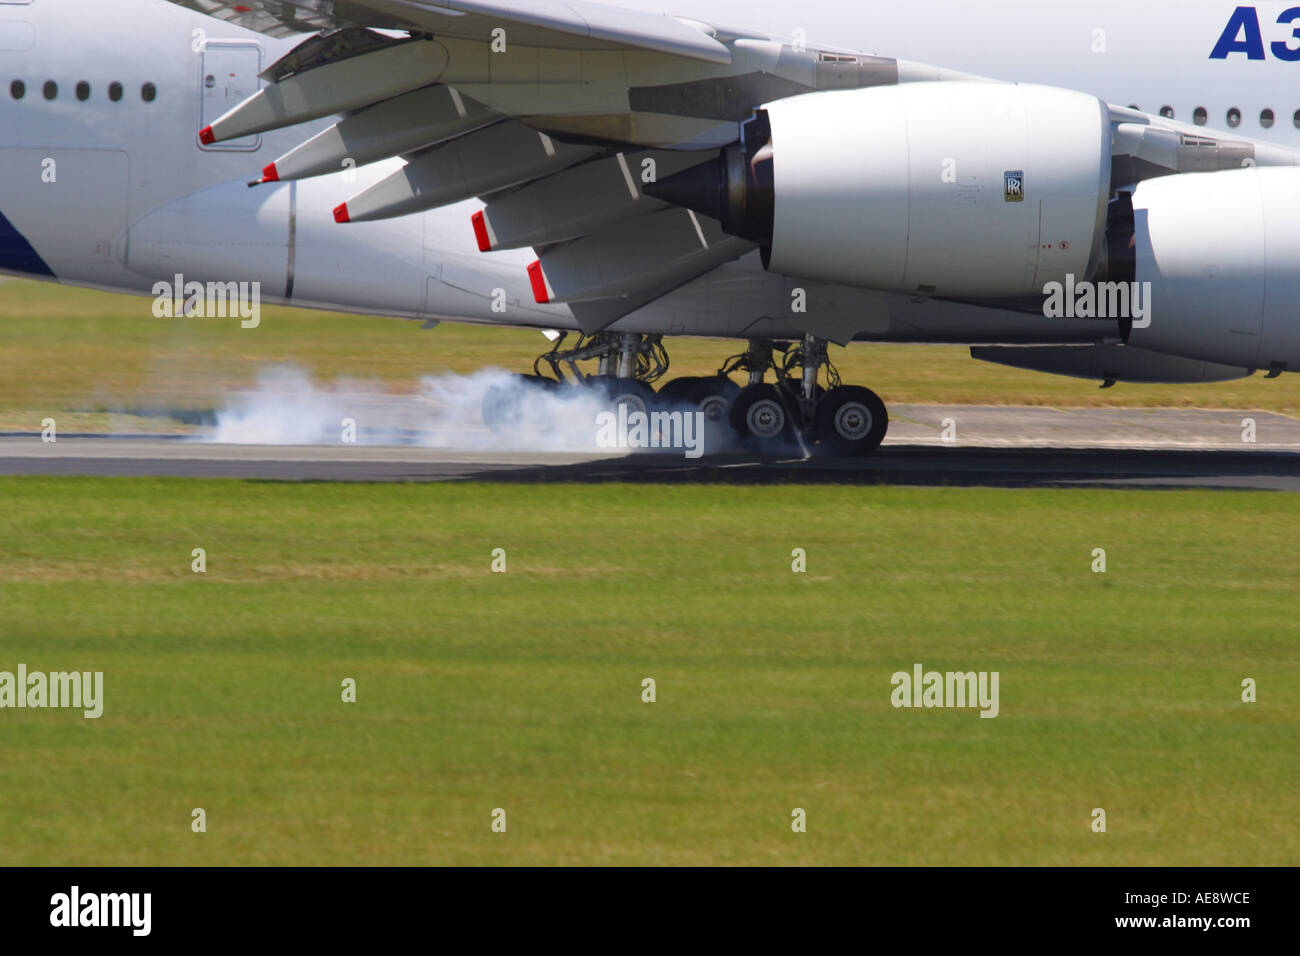 A380 Airbus A380 new airliner touchdown landing with tyre smoke smoking wheels undercarriage - Stock Image